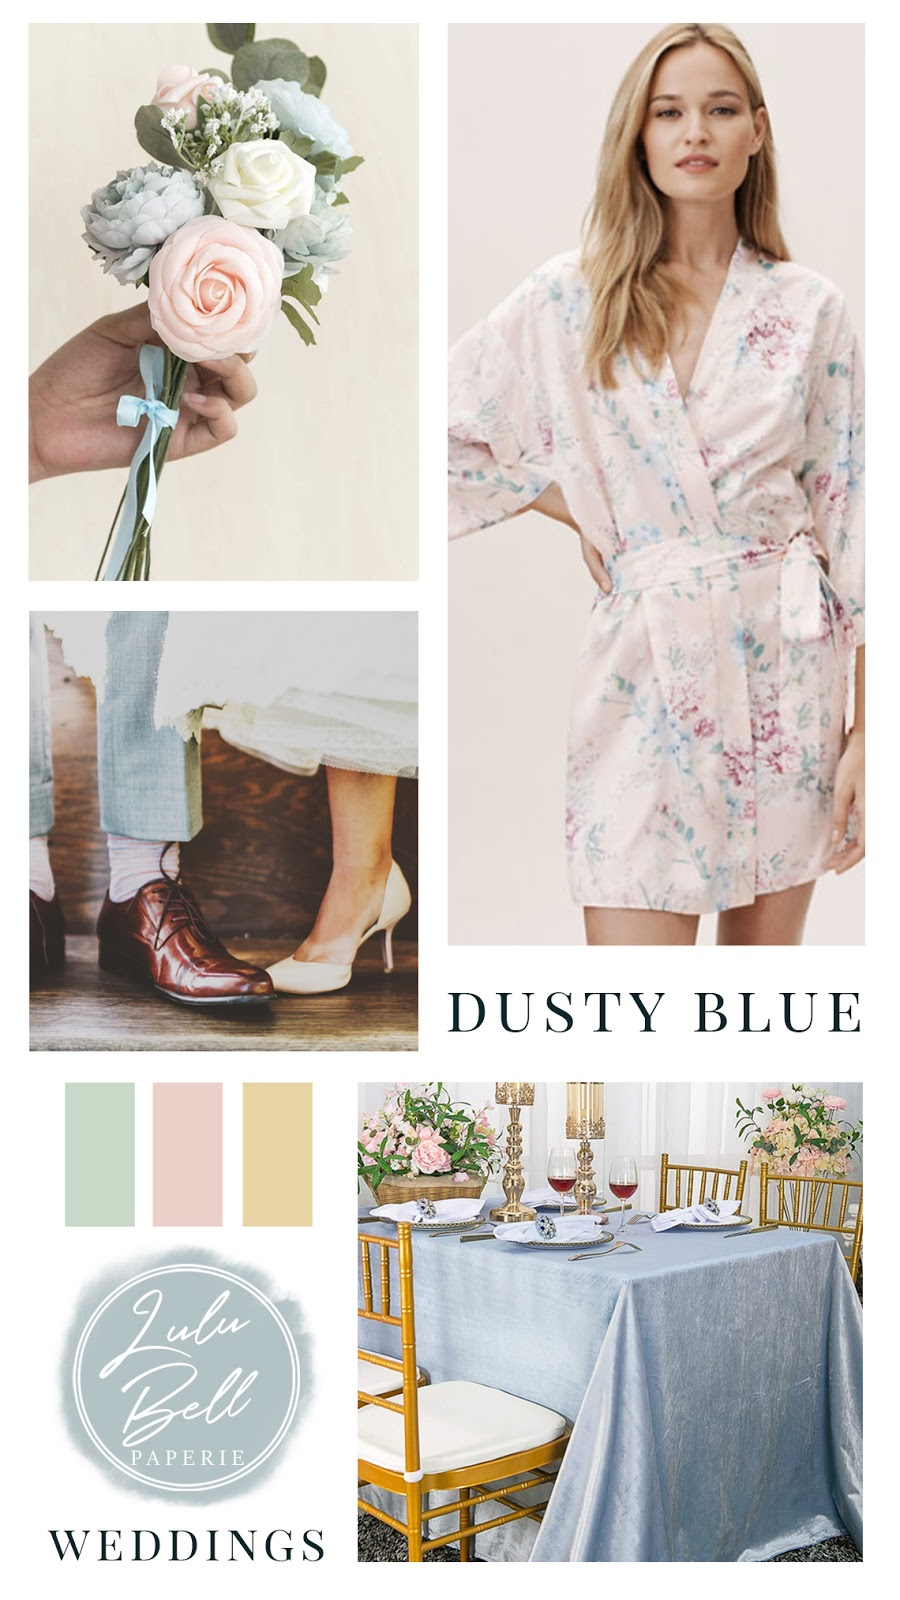 Dusty Blue Blush Pink and Green Wedding Color Palette Inspiration